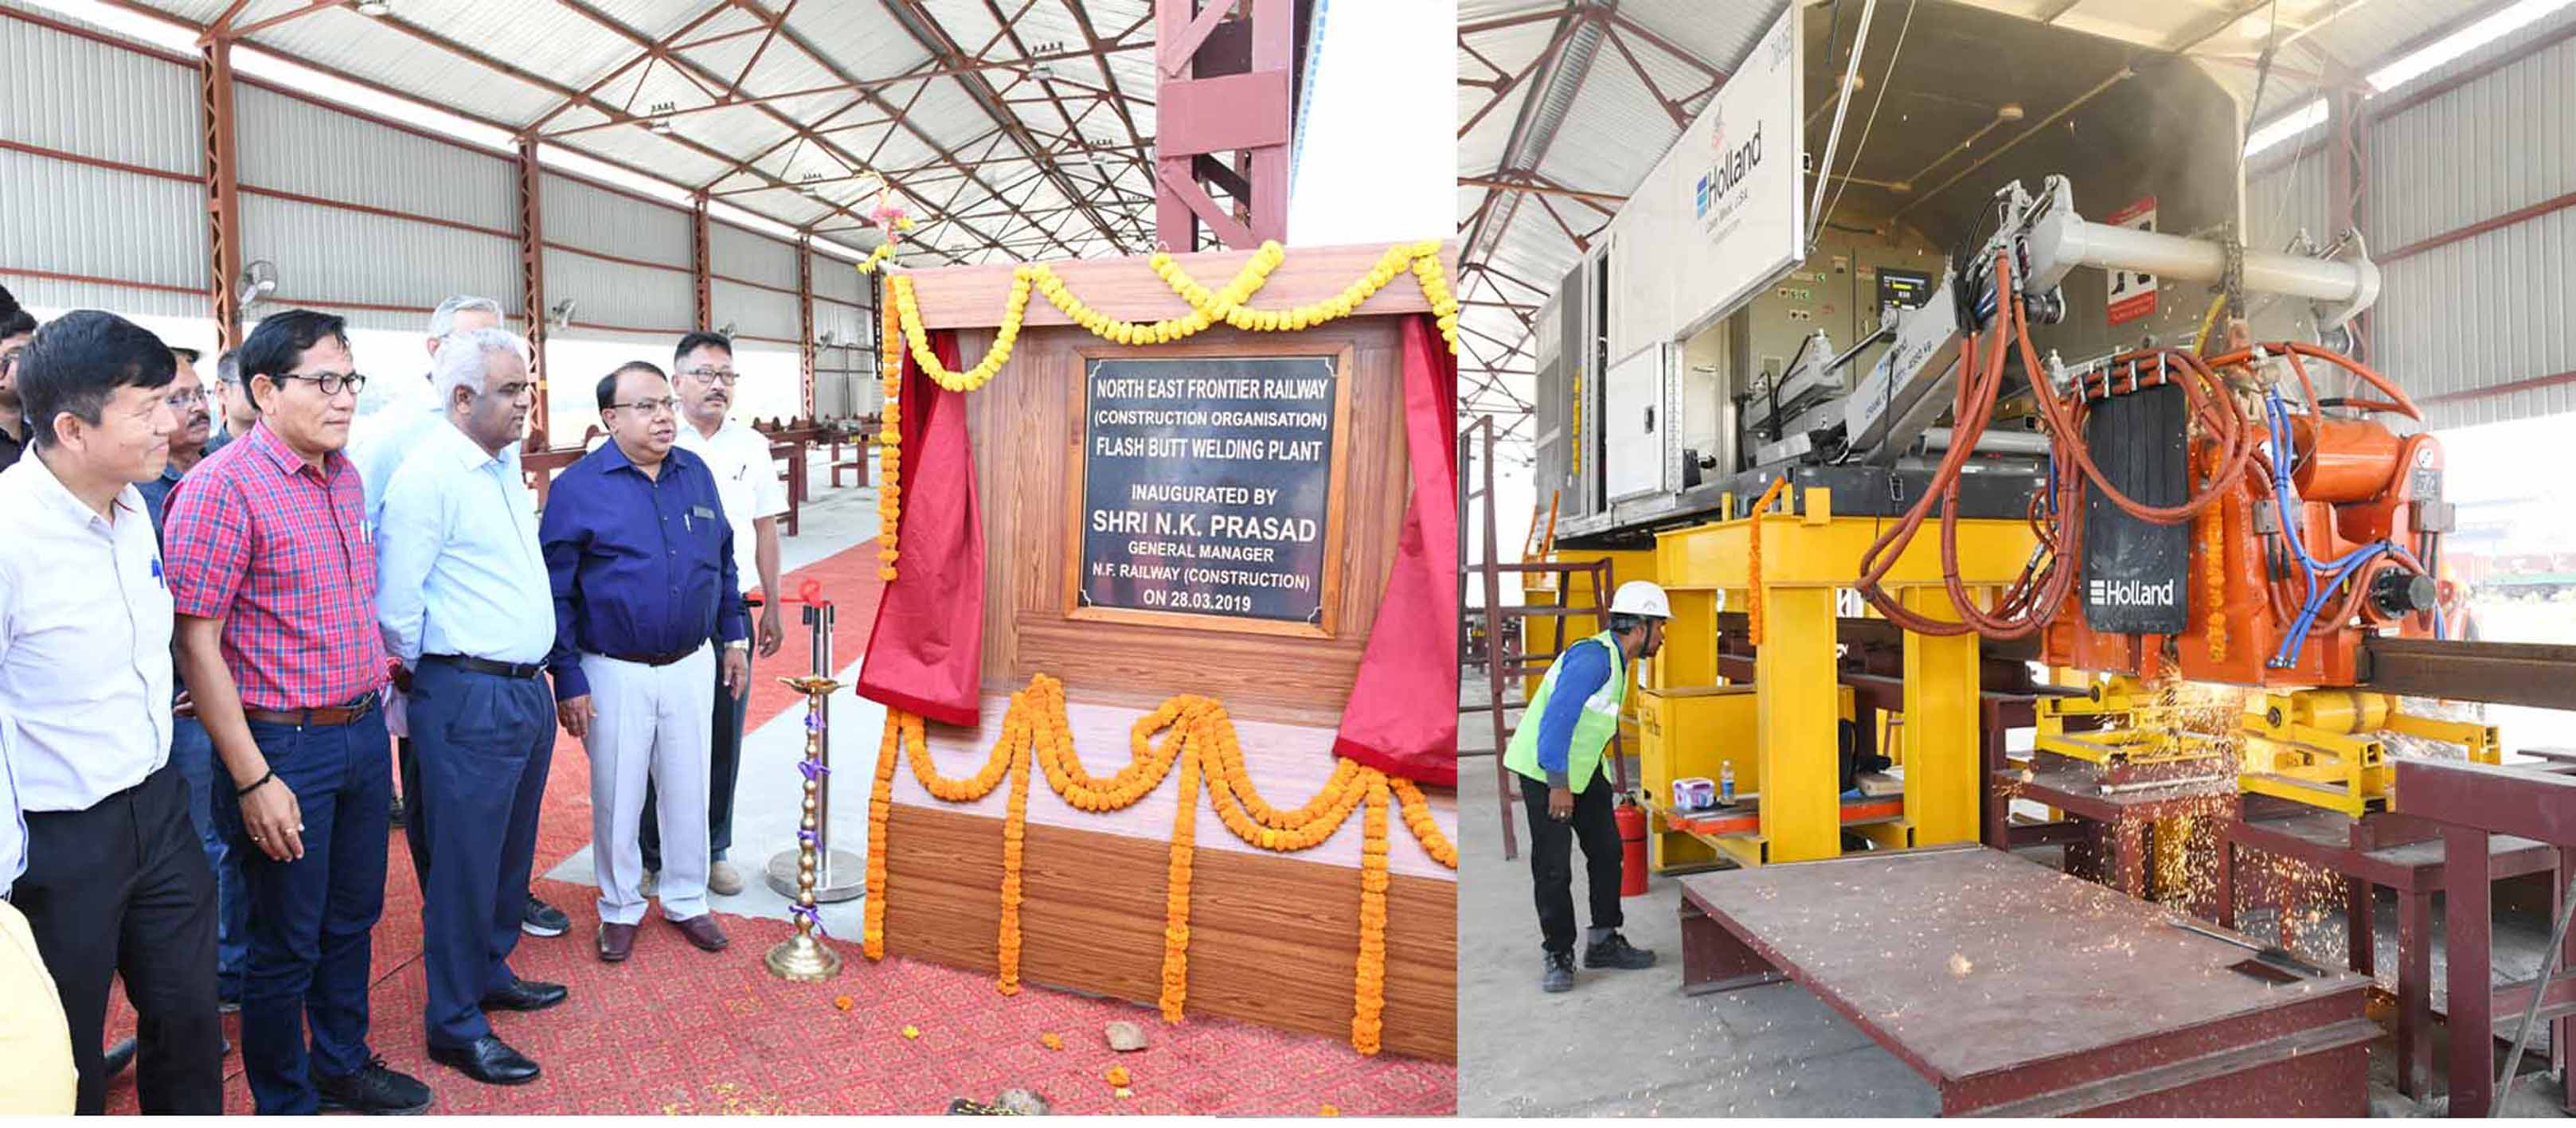 Flash butt welding plant inaugurated at New Bongaigaon by N.F.Railway General Manager